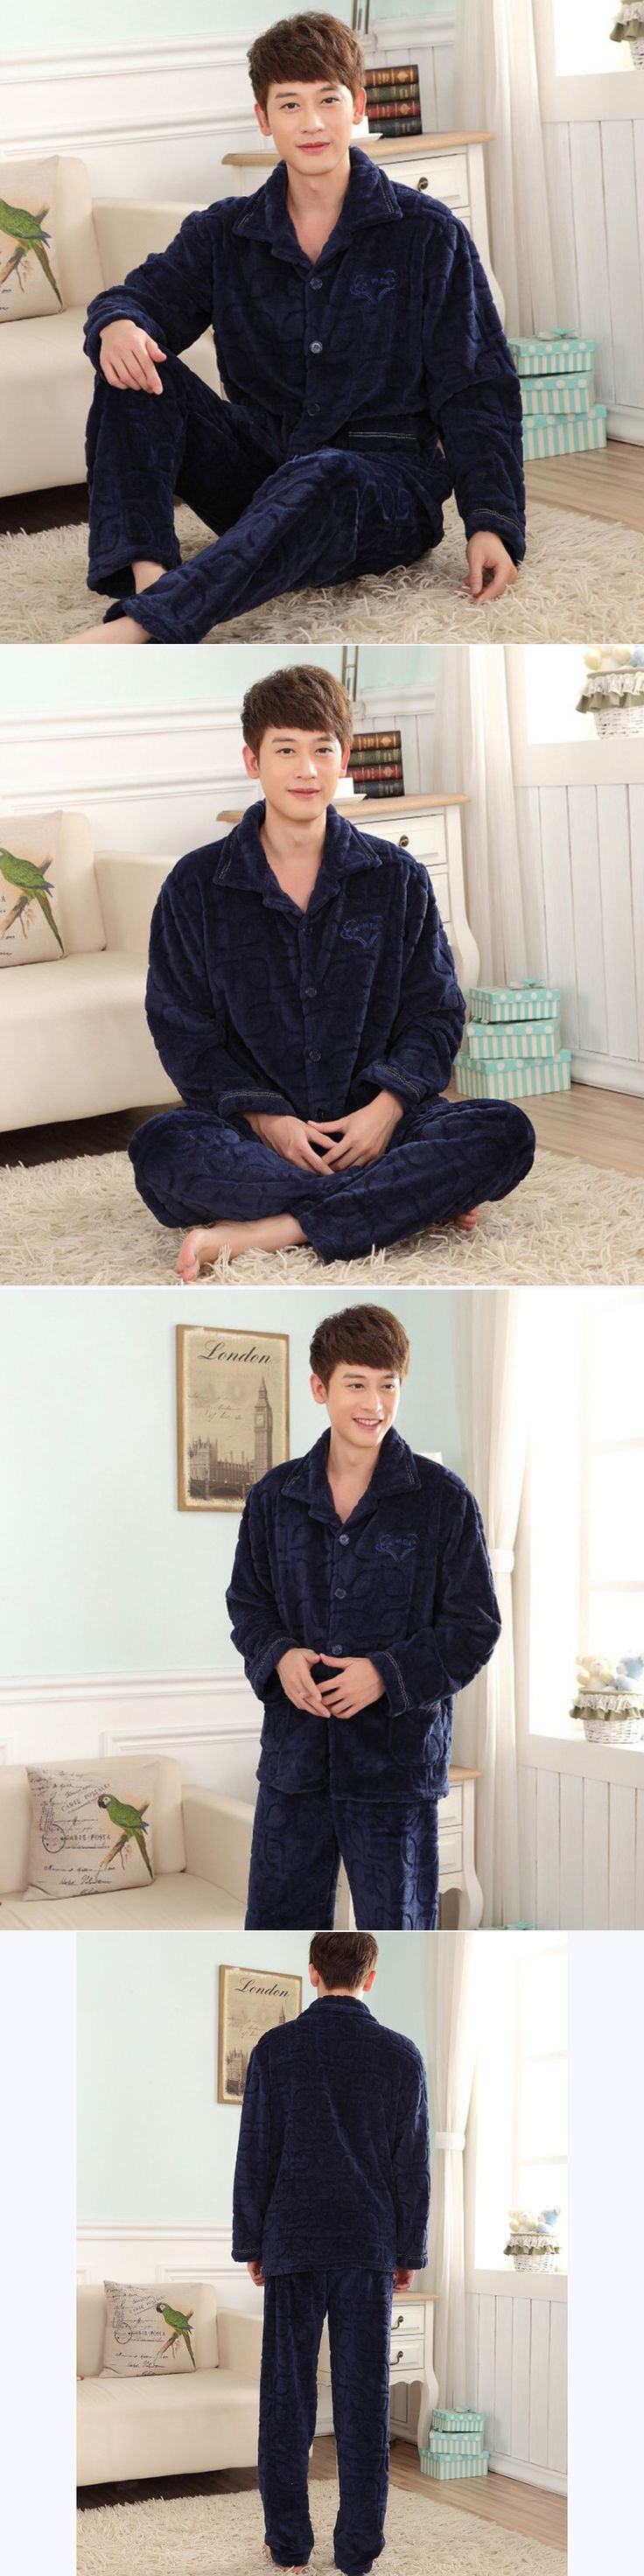 Fall and Winter Men's Flannel Pajamas Sets Fashion Casual Thicken Sleepwear Velvet Mink Cashmere Men's Clothing Large Size